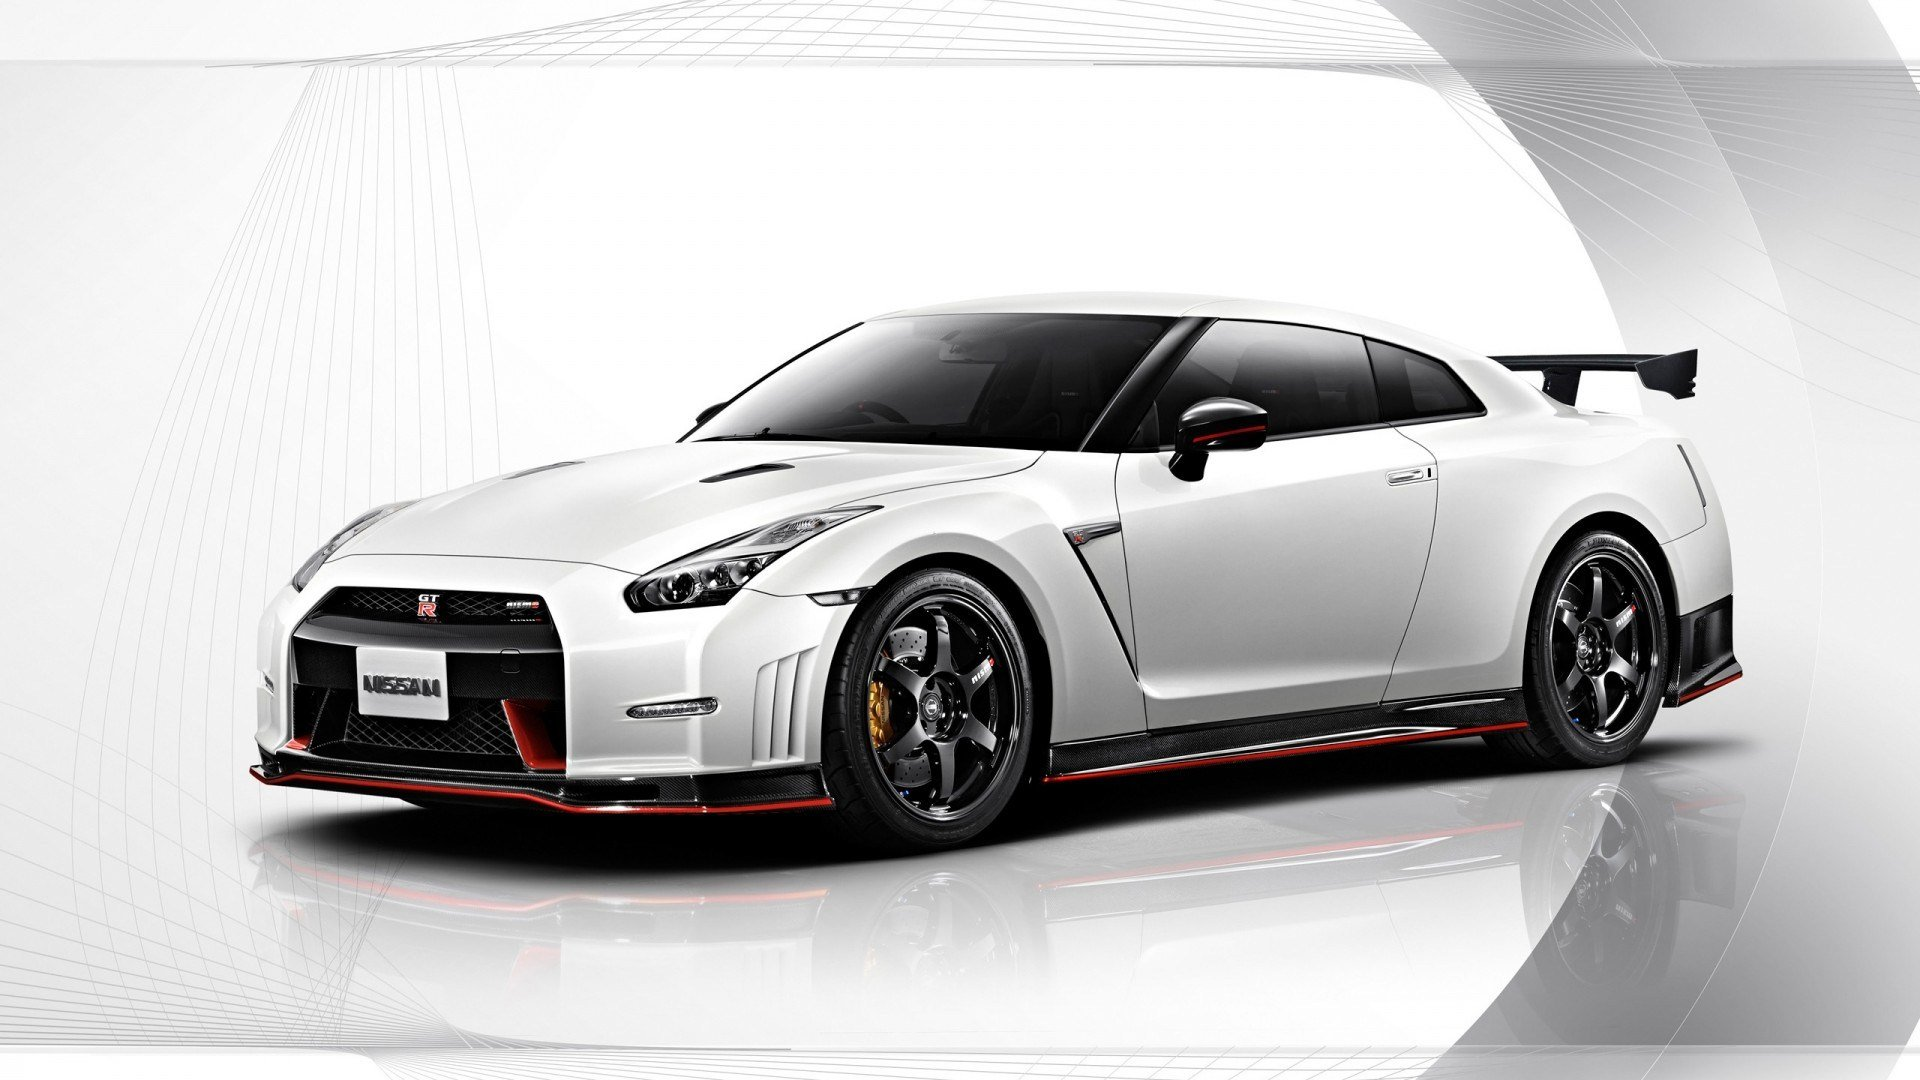 New 2015 Nissan Gt R Nismo 2 Wallpaper Hd Car Wallpapers On This Month